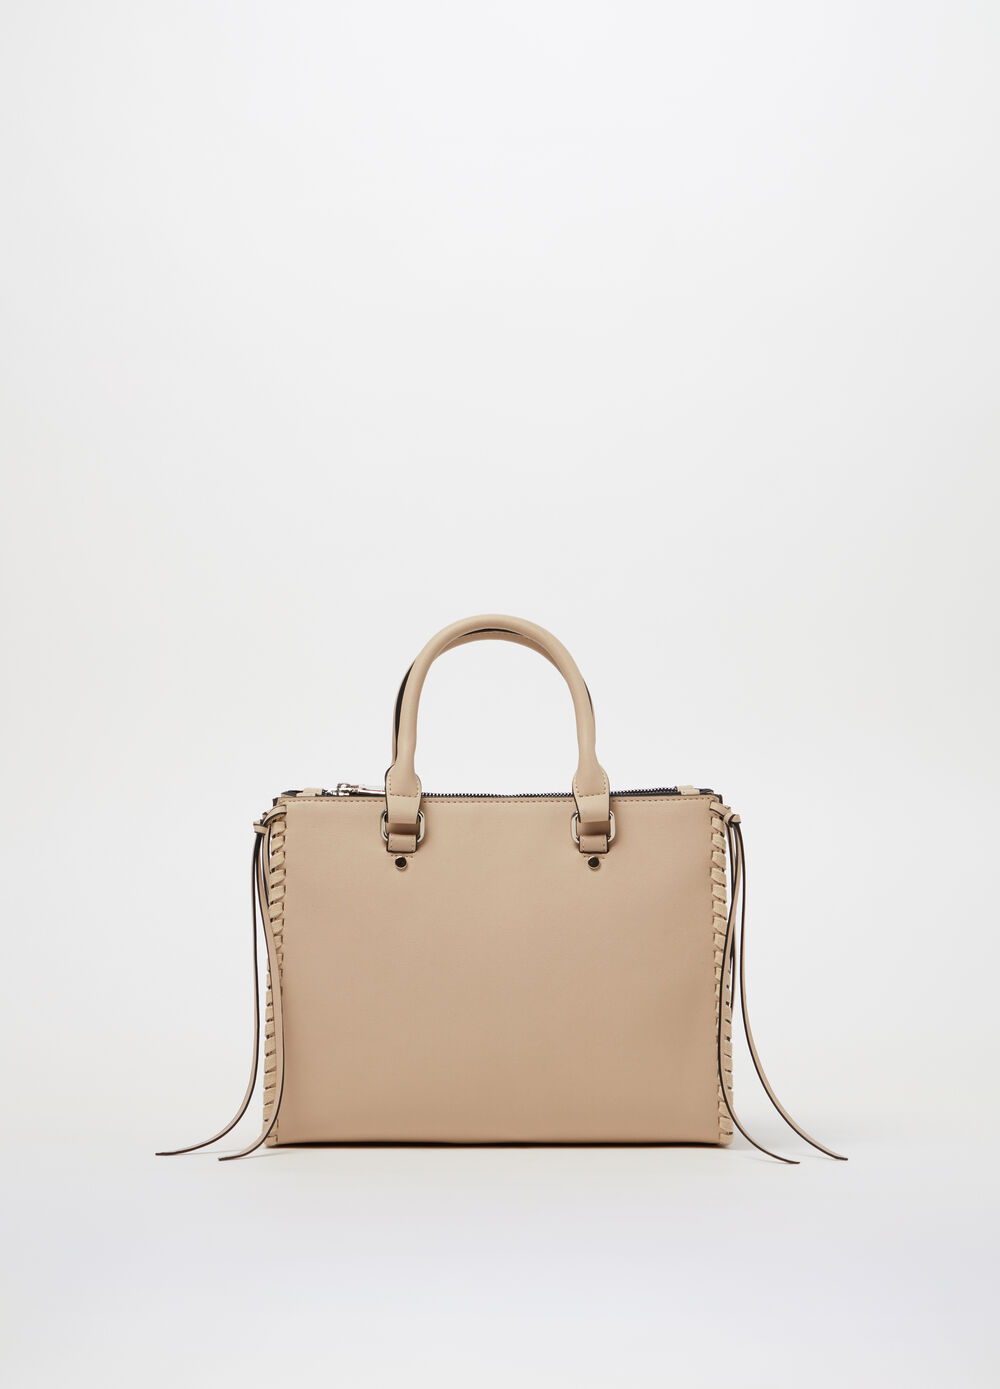 Handbag with lace-up details on the sides